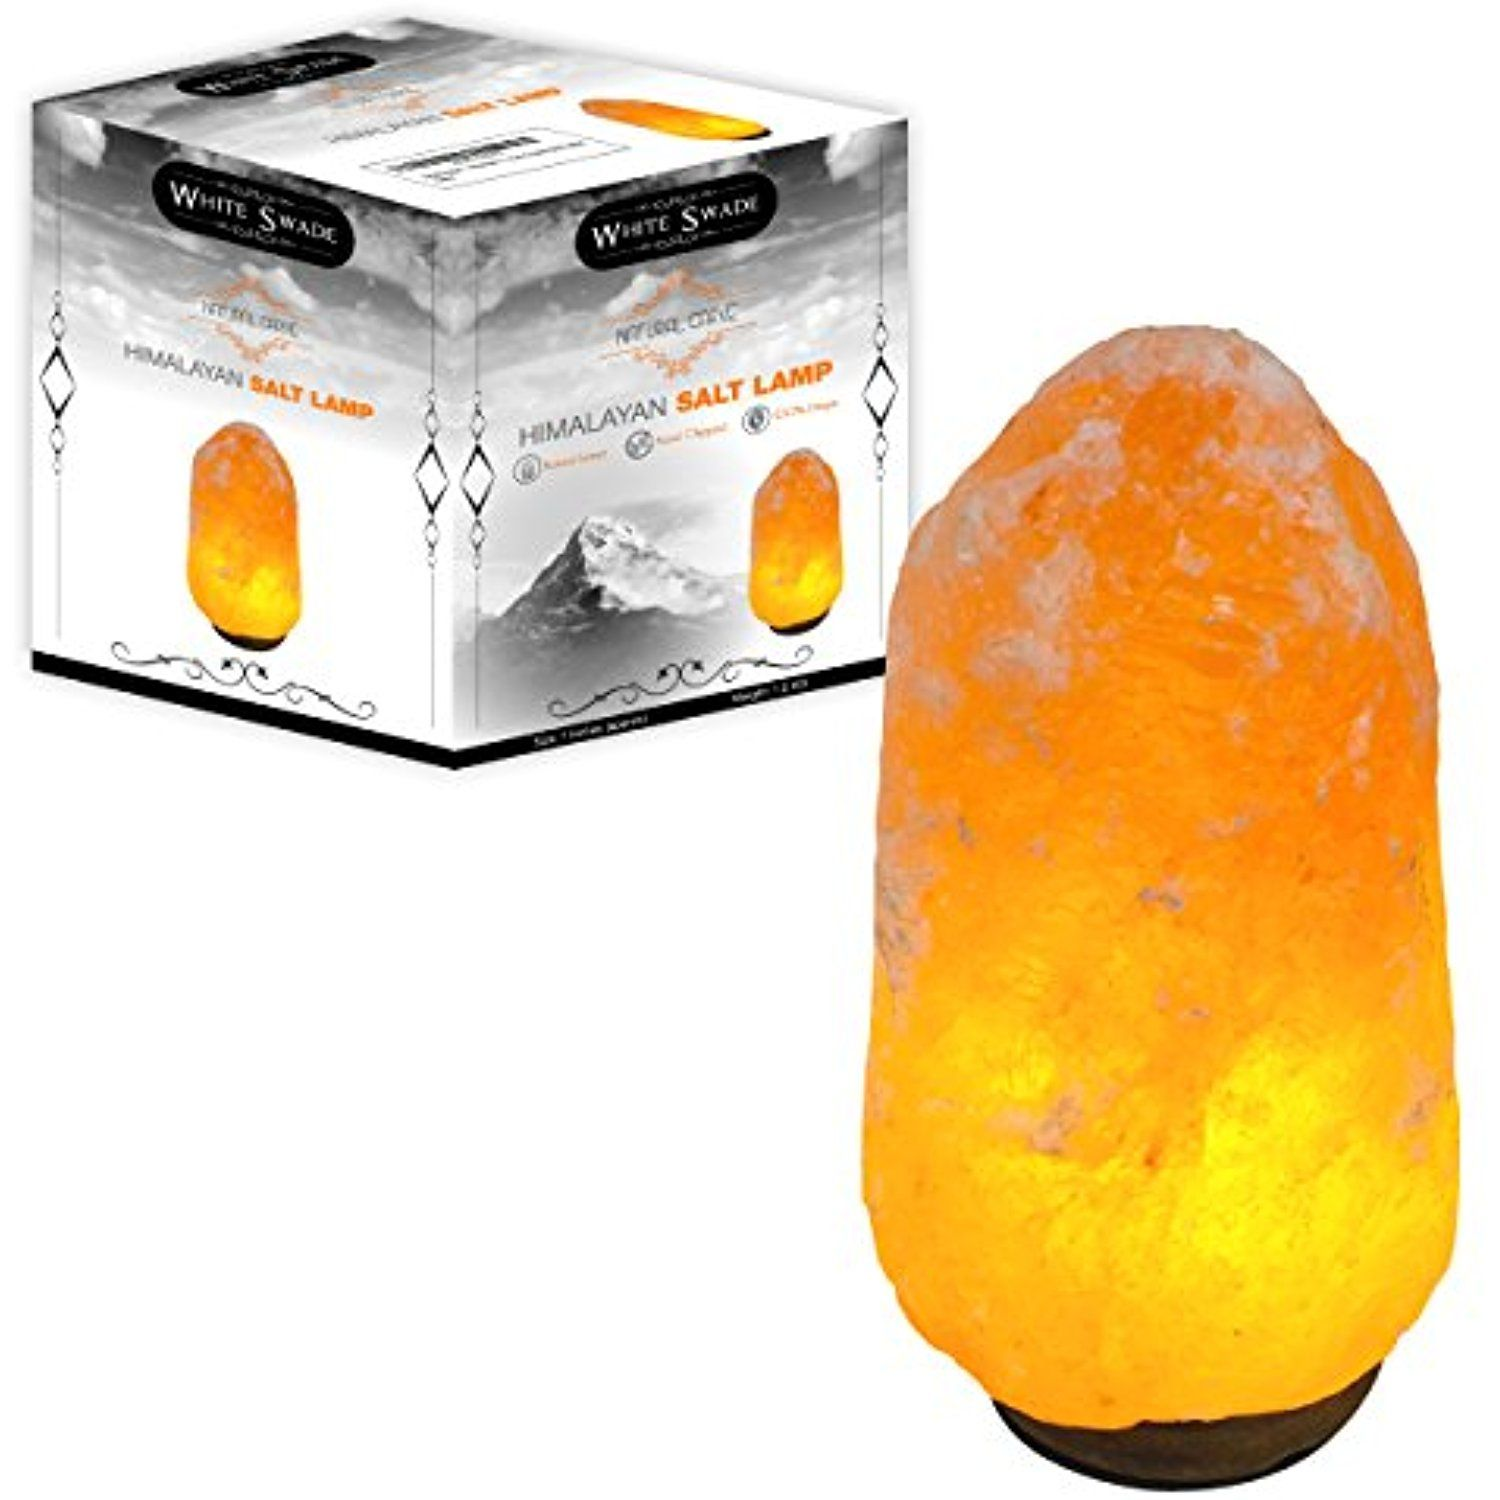 "Genuine Himalayan Salt Lamp Delectable Whiteswade 7"" Himalayan Salt Lamp With Dimmer Switch Genuine Neem Design Ideas"